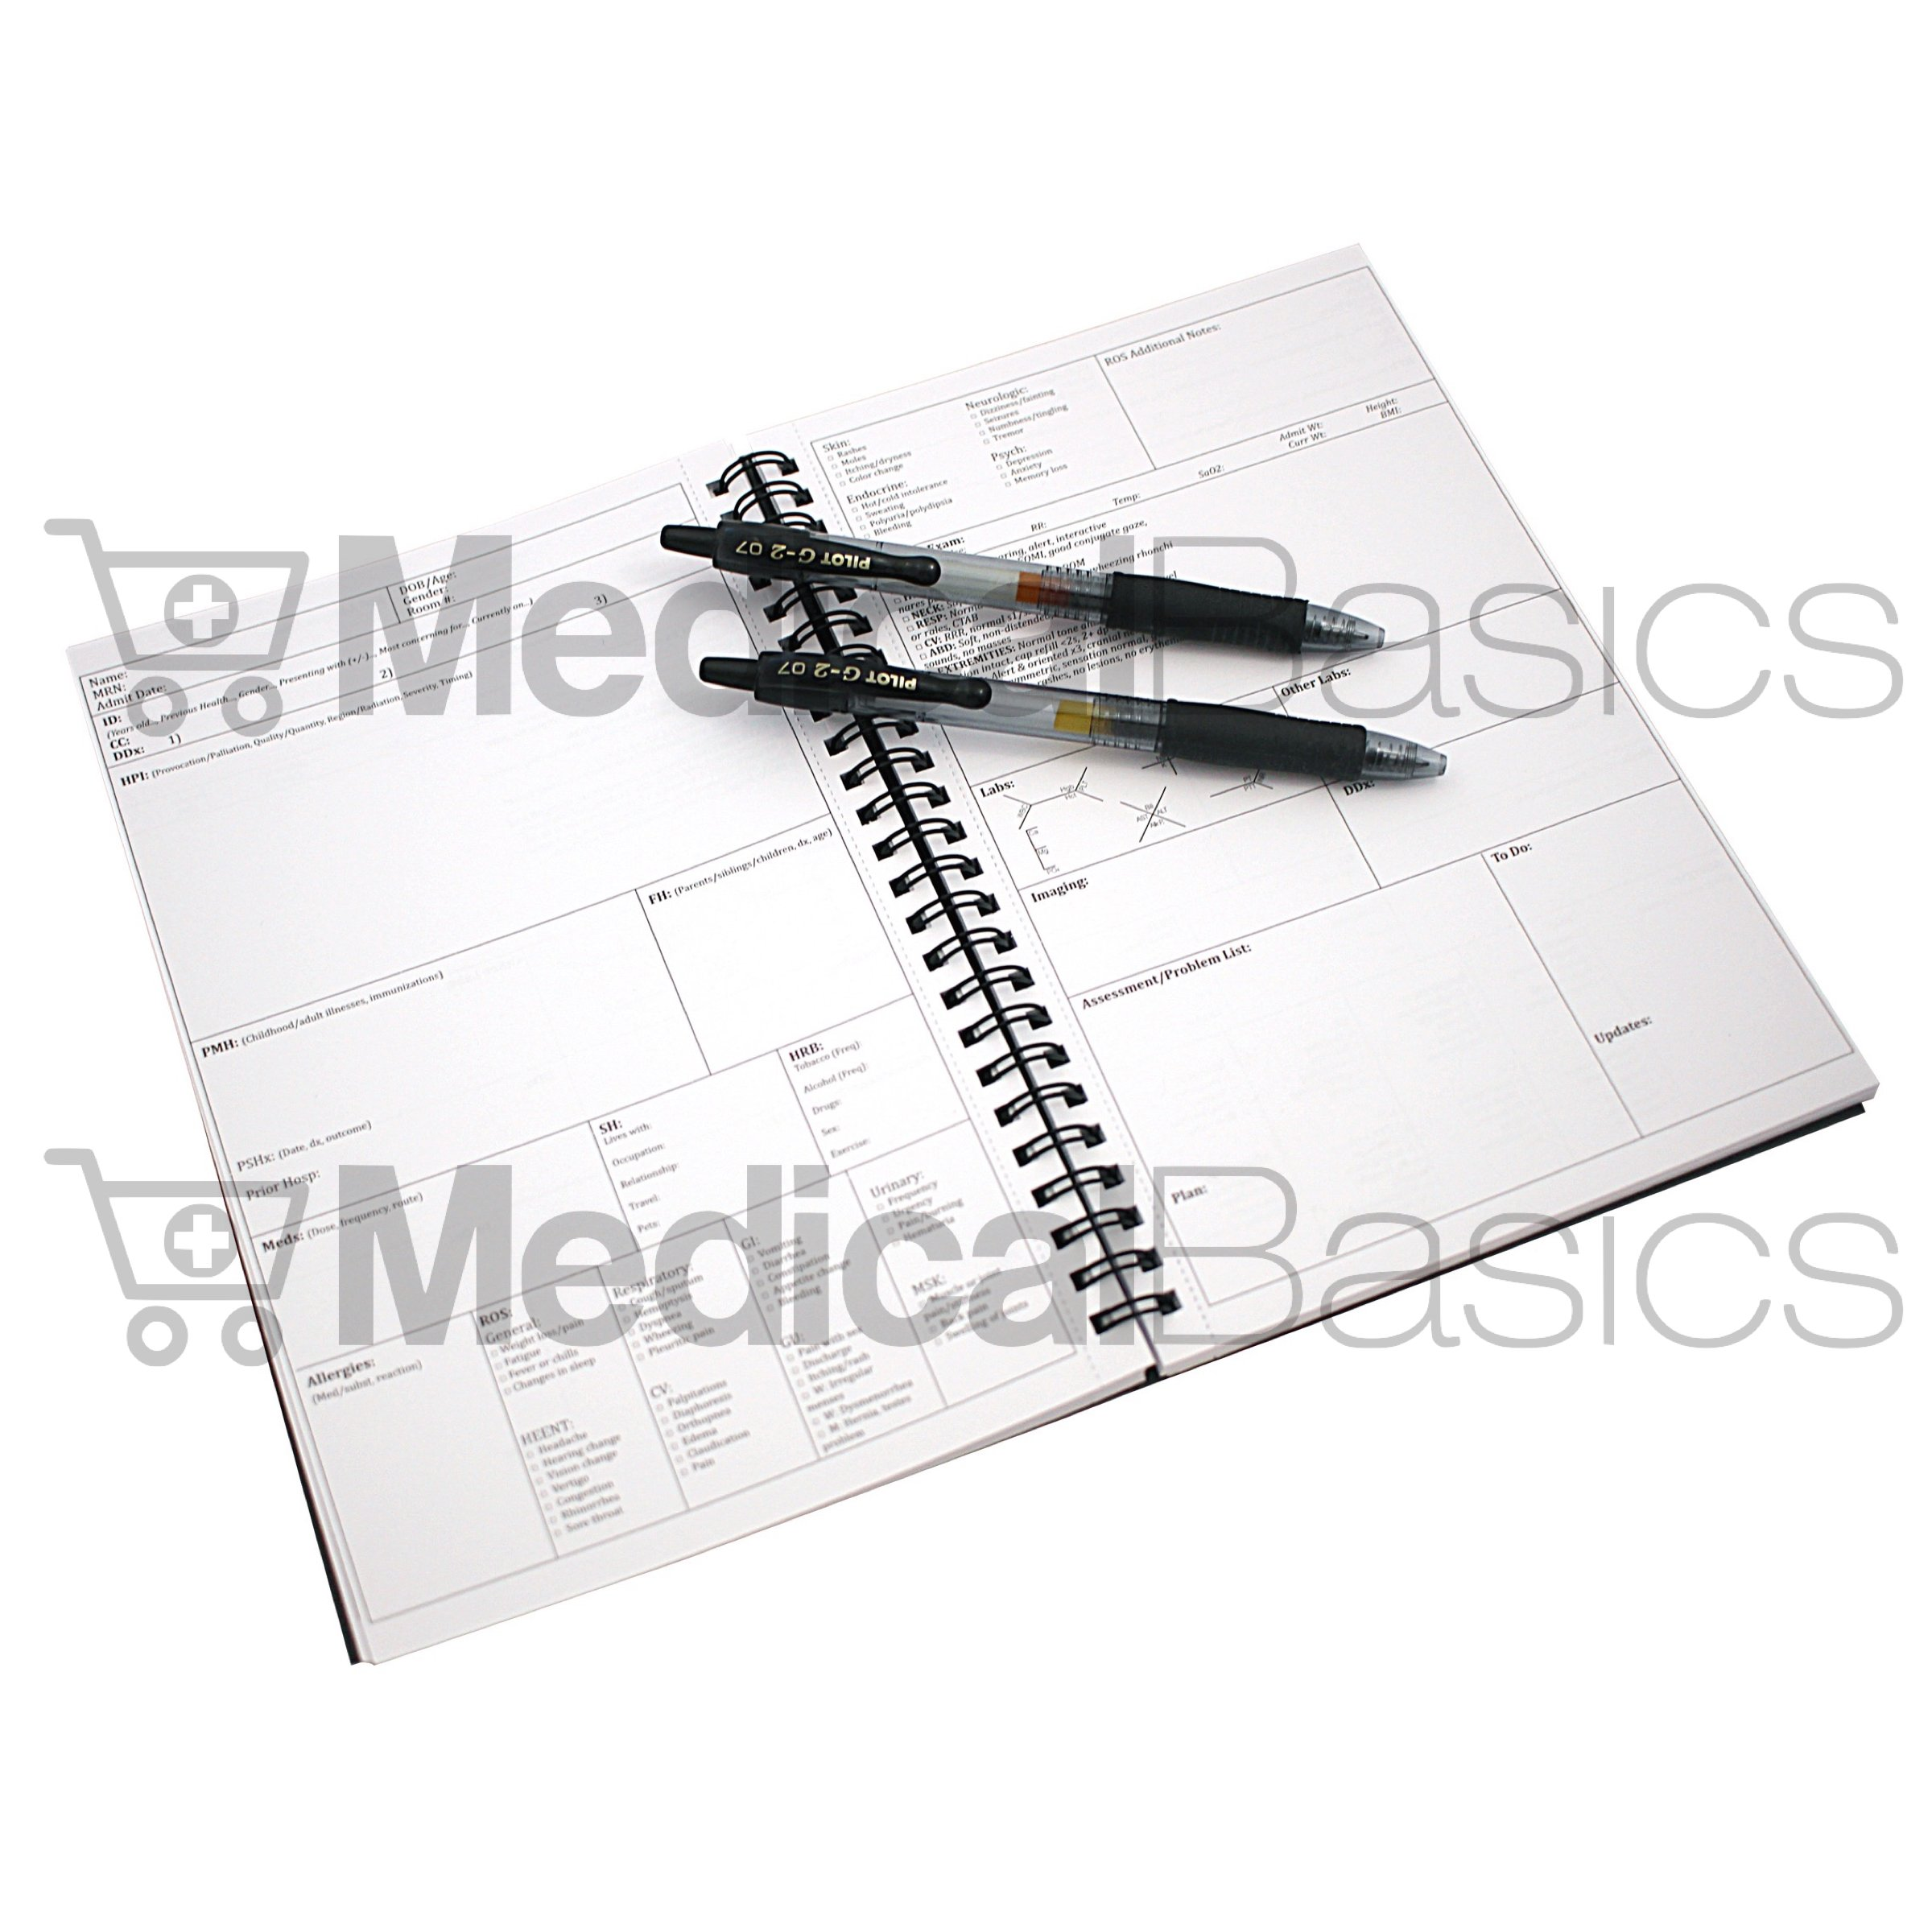 H&P notebook (3 pack) - Medical History and Physical notebook, 100 medical templates with perforations by Medical Basics (Image #5)